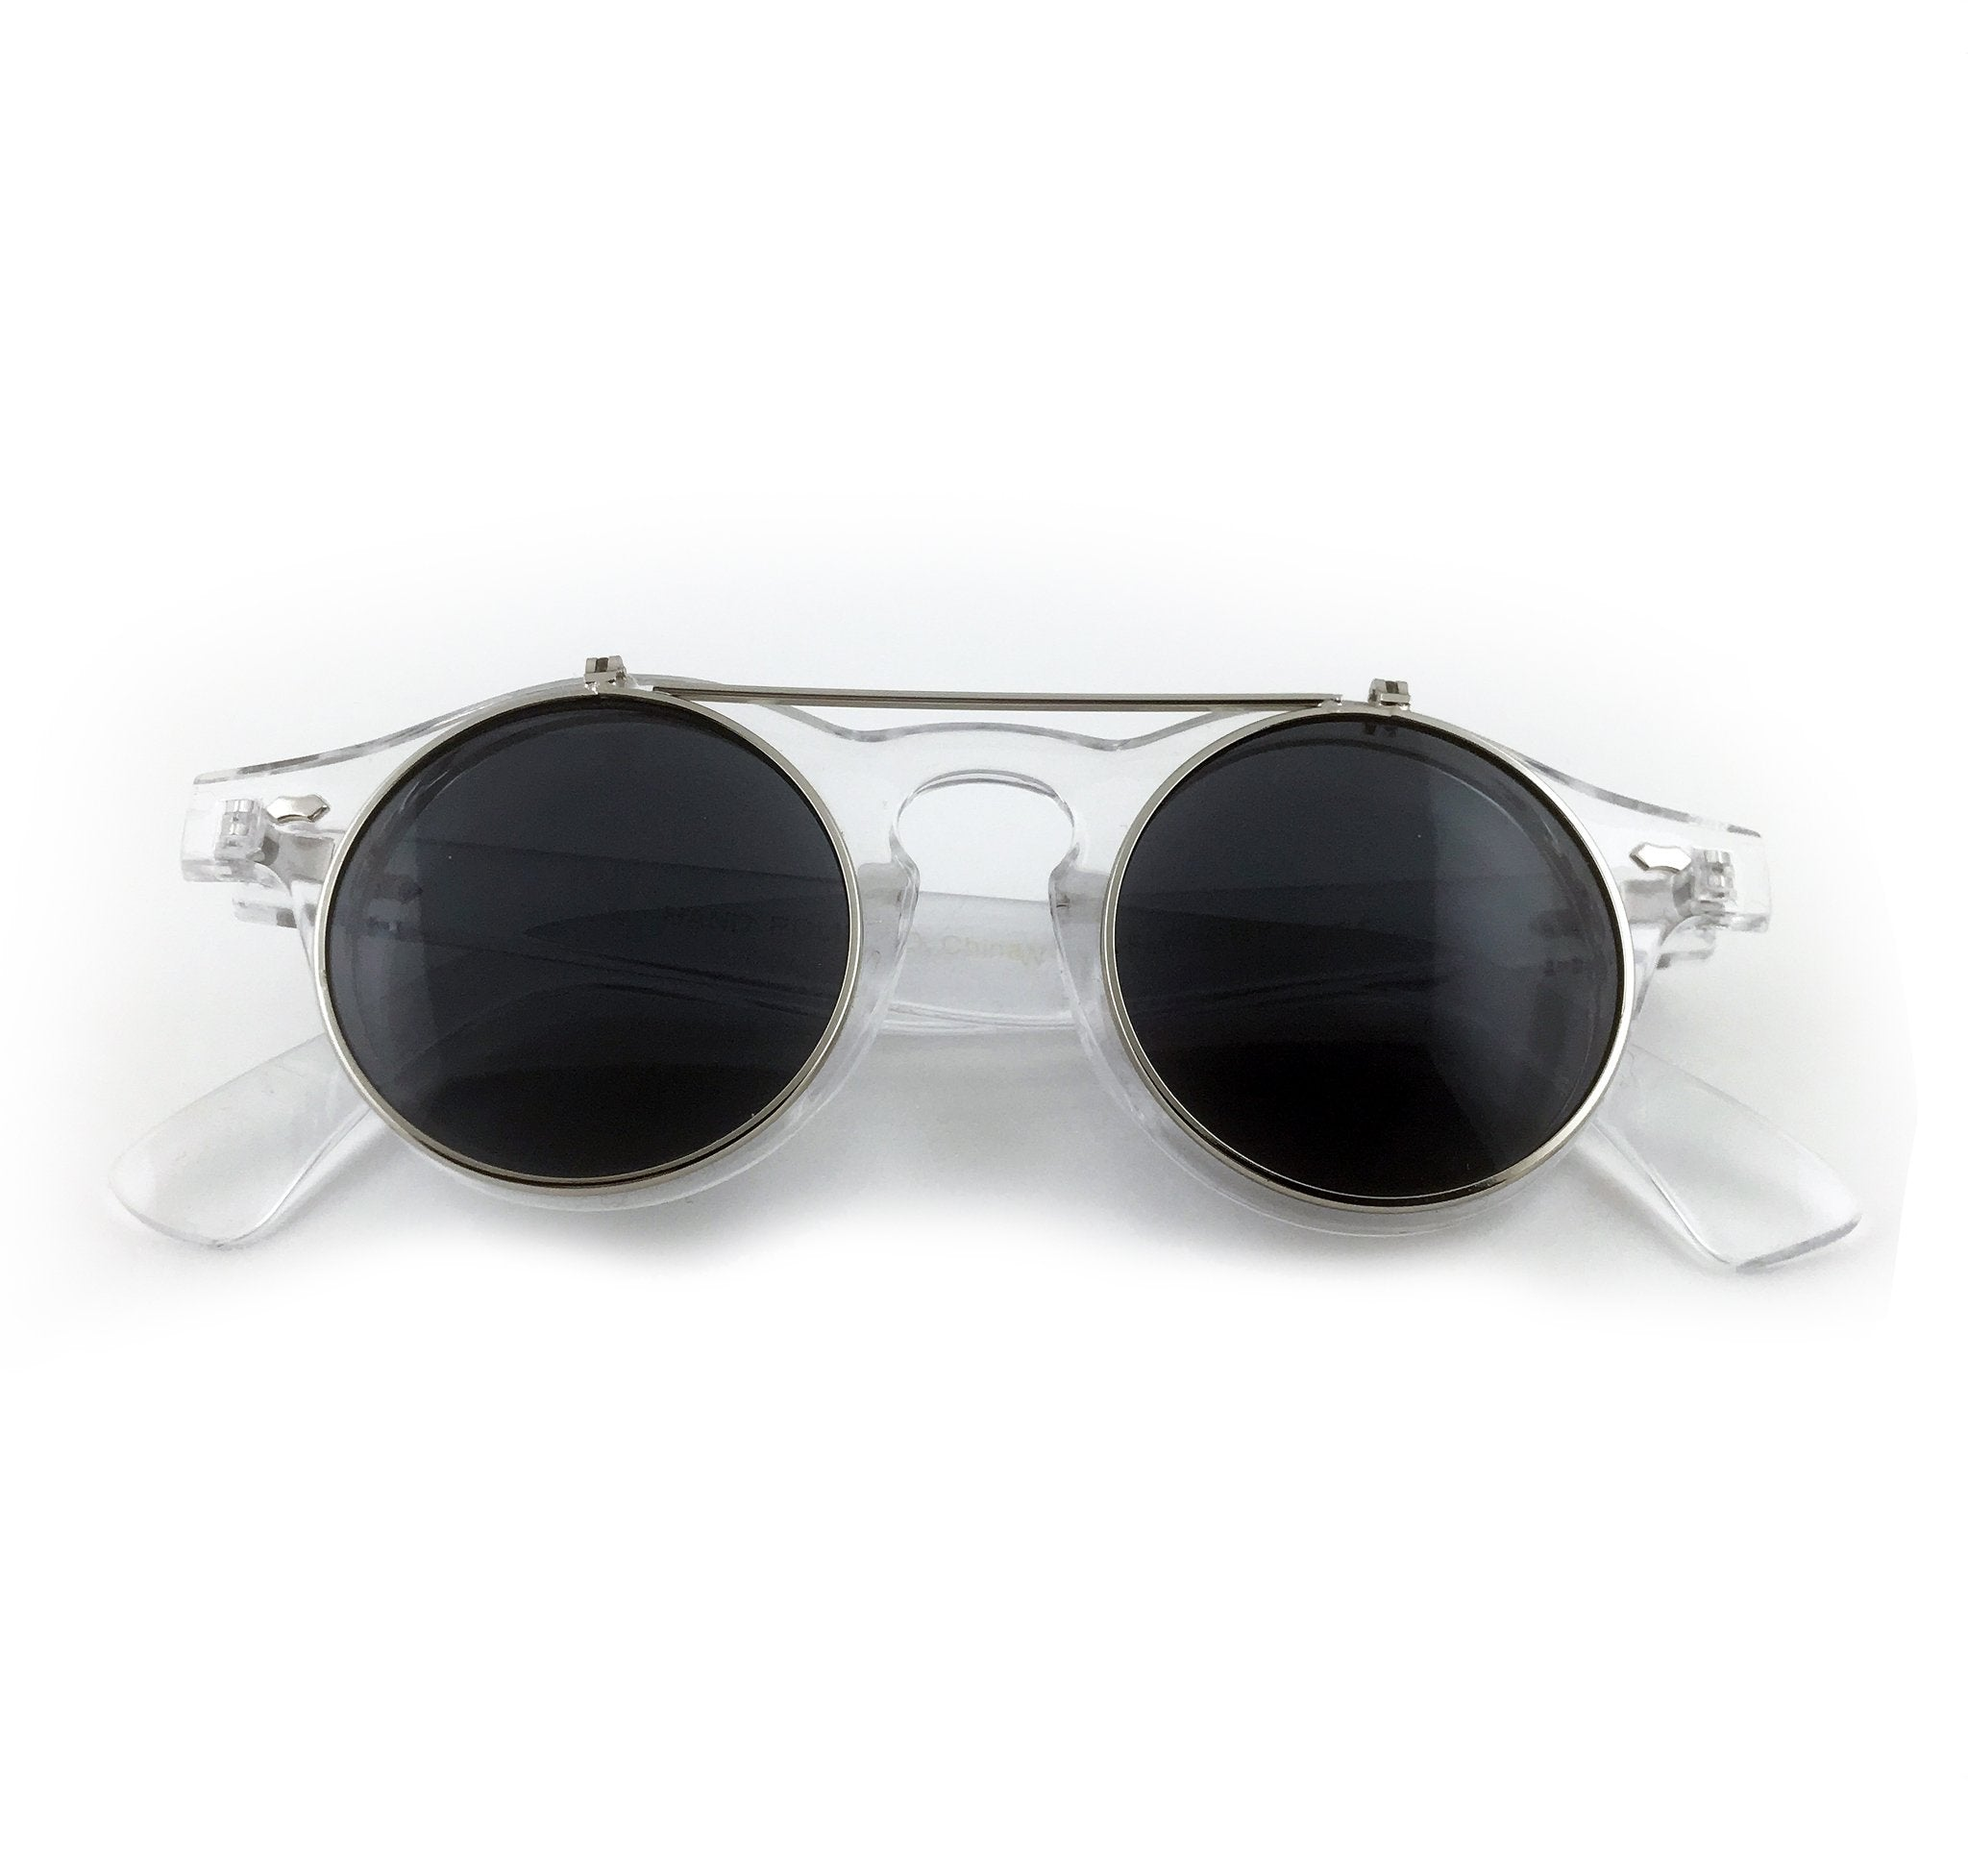 Black lens sunglasses that flip up with clear frame | The Perfect Gentleman